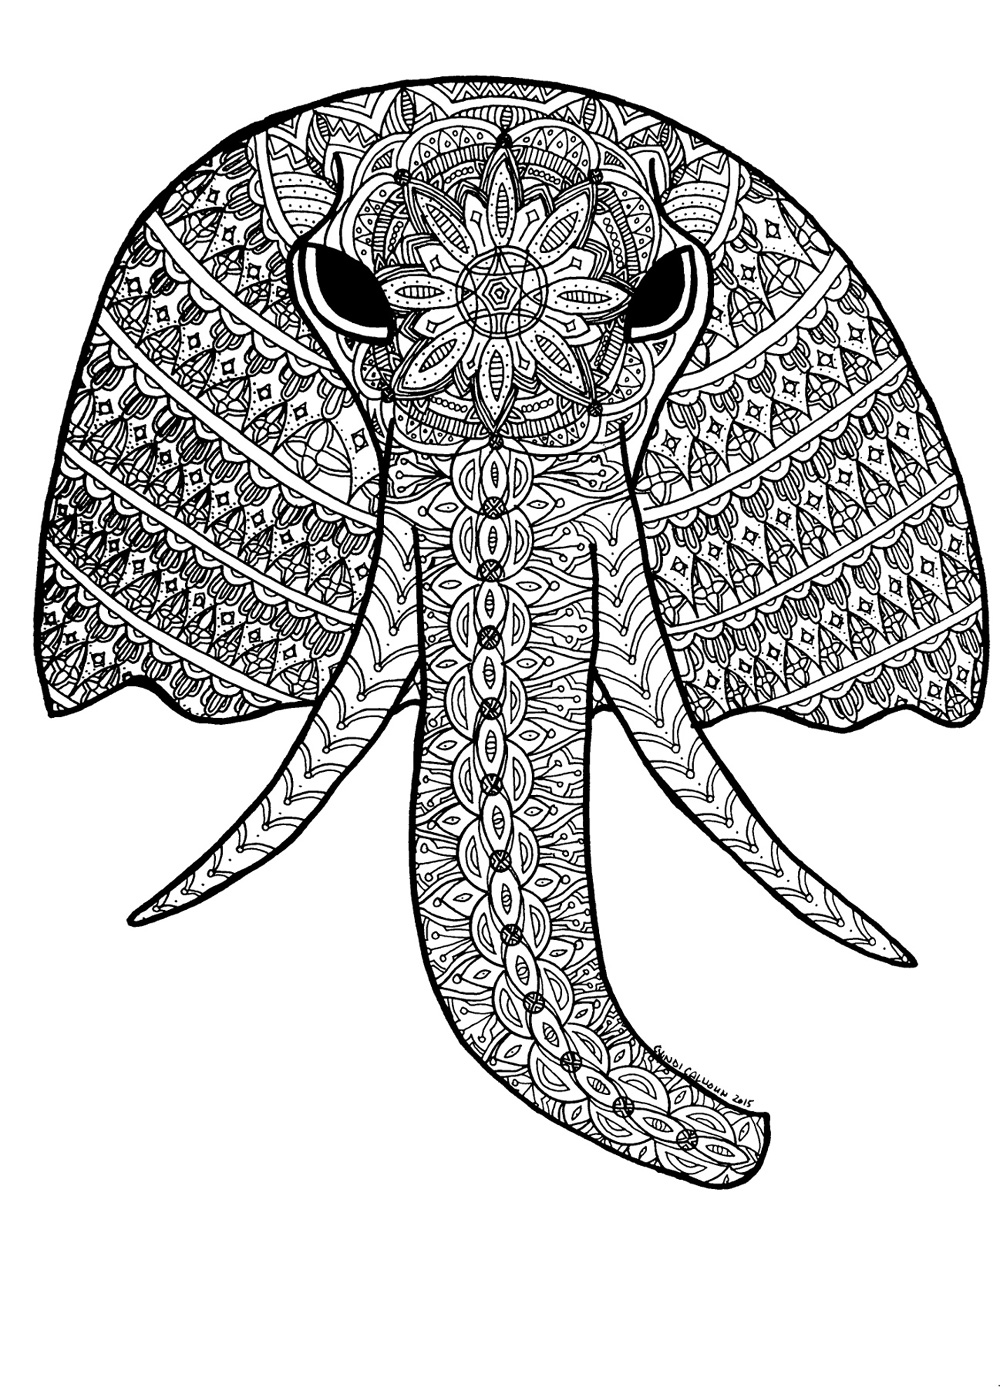 elephant coloring pages for adults free download - Download Coloring Pages For Adults